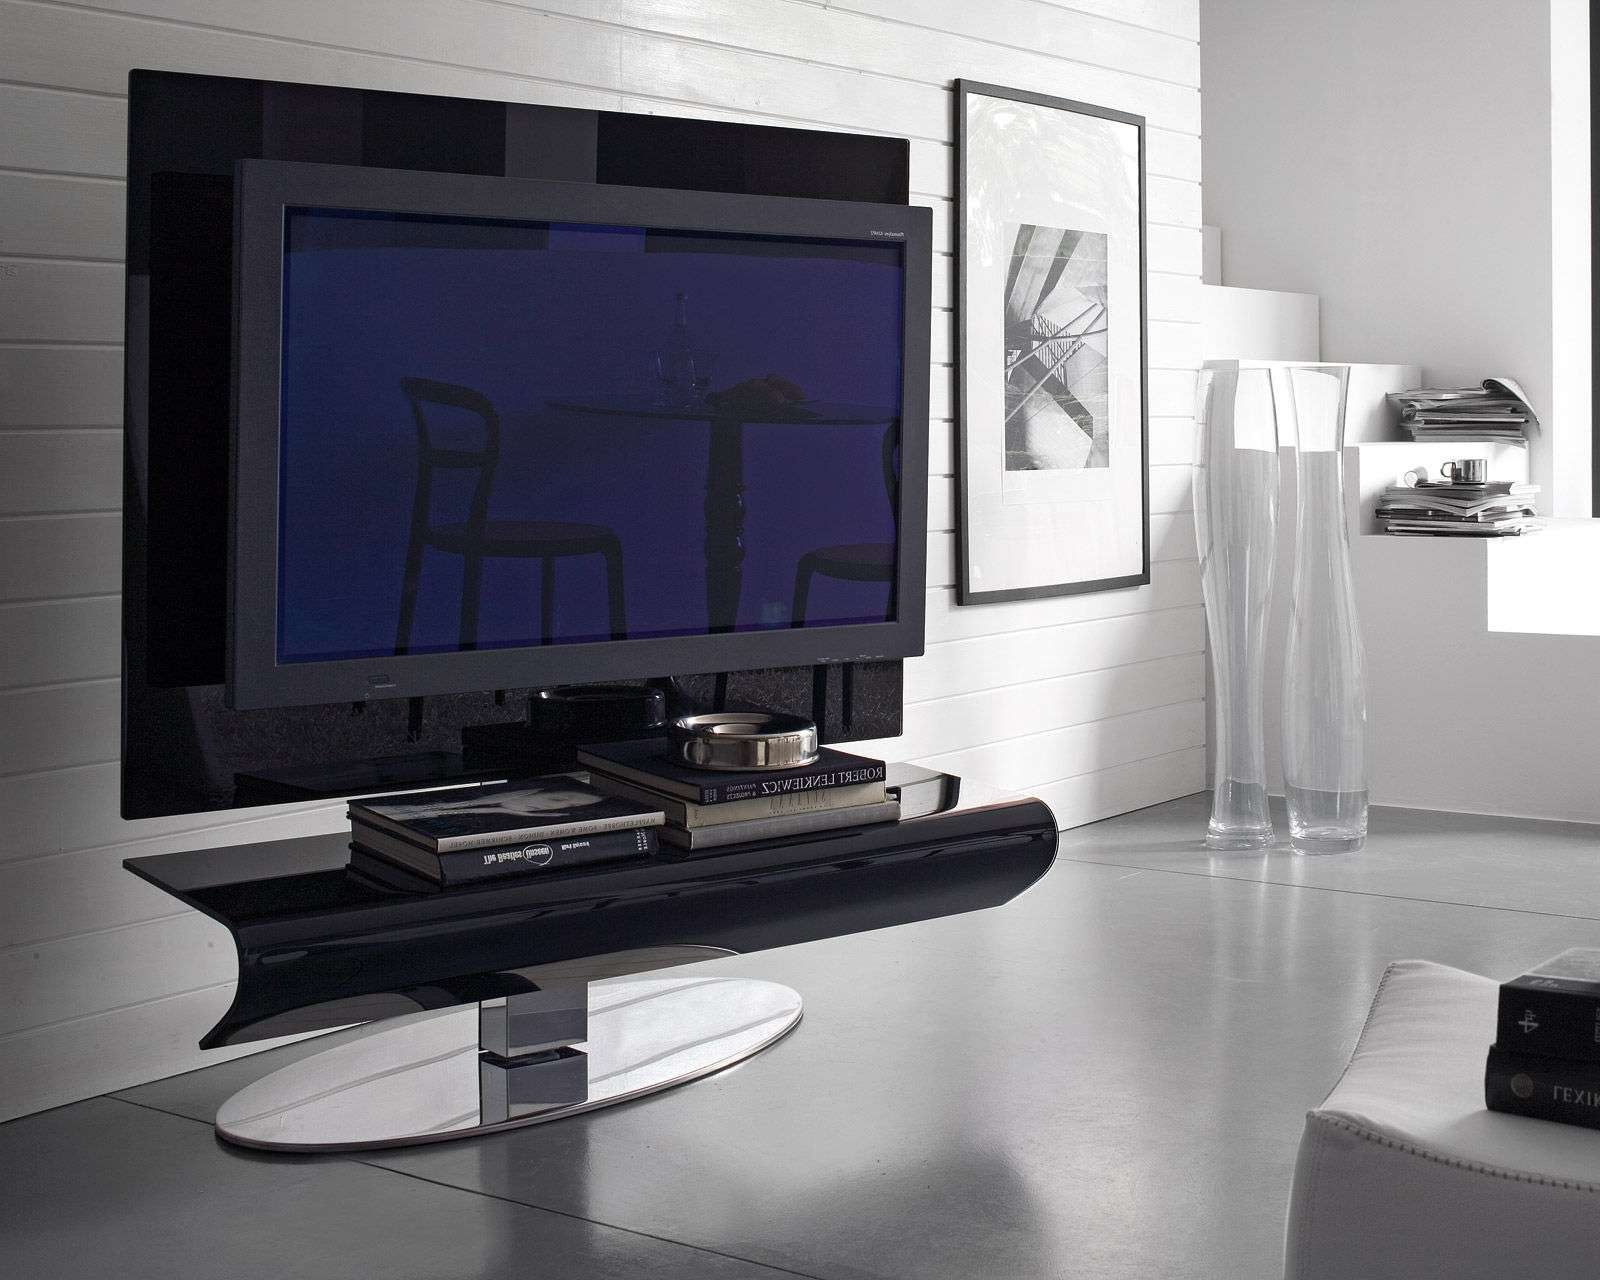 Glossy Black Acrylic Flat Screen Tv Stand With Oval Chromed Metal For Contemporary Tv Stands For Flat Screens (Gallery 7 of 15)